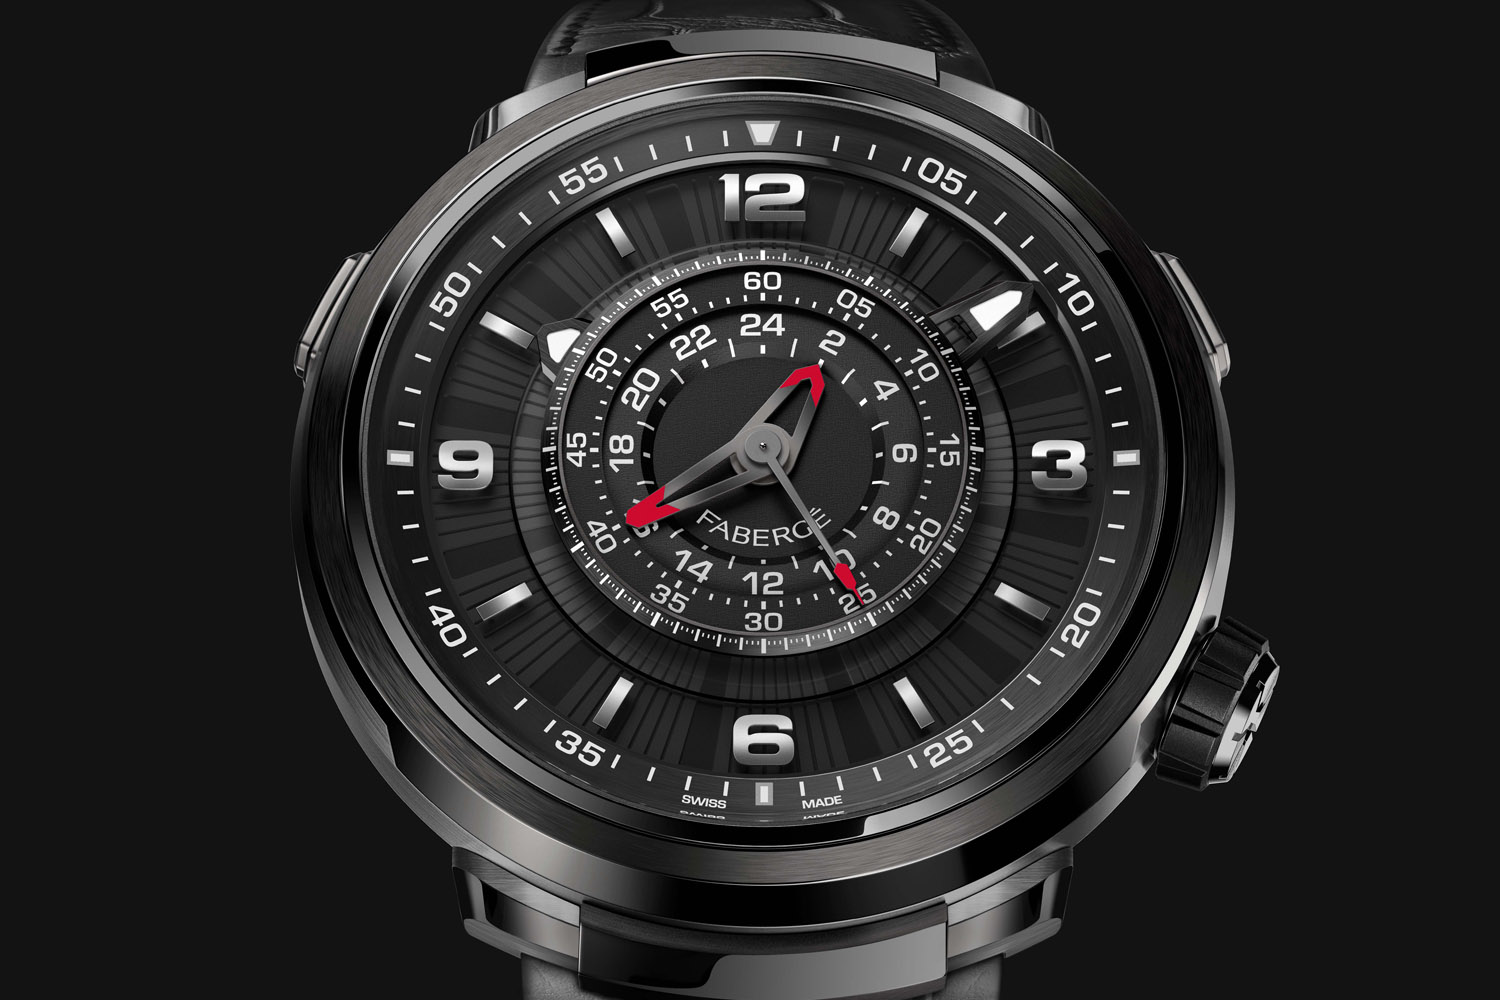 Introducing – Fabergé Visionnaire Chronograph, with Revolutionary Movement by Agenhor (And the Best Video To Explain It)